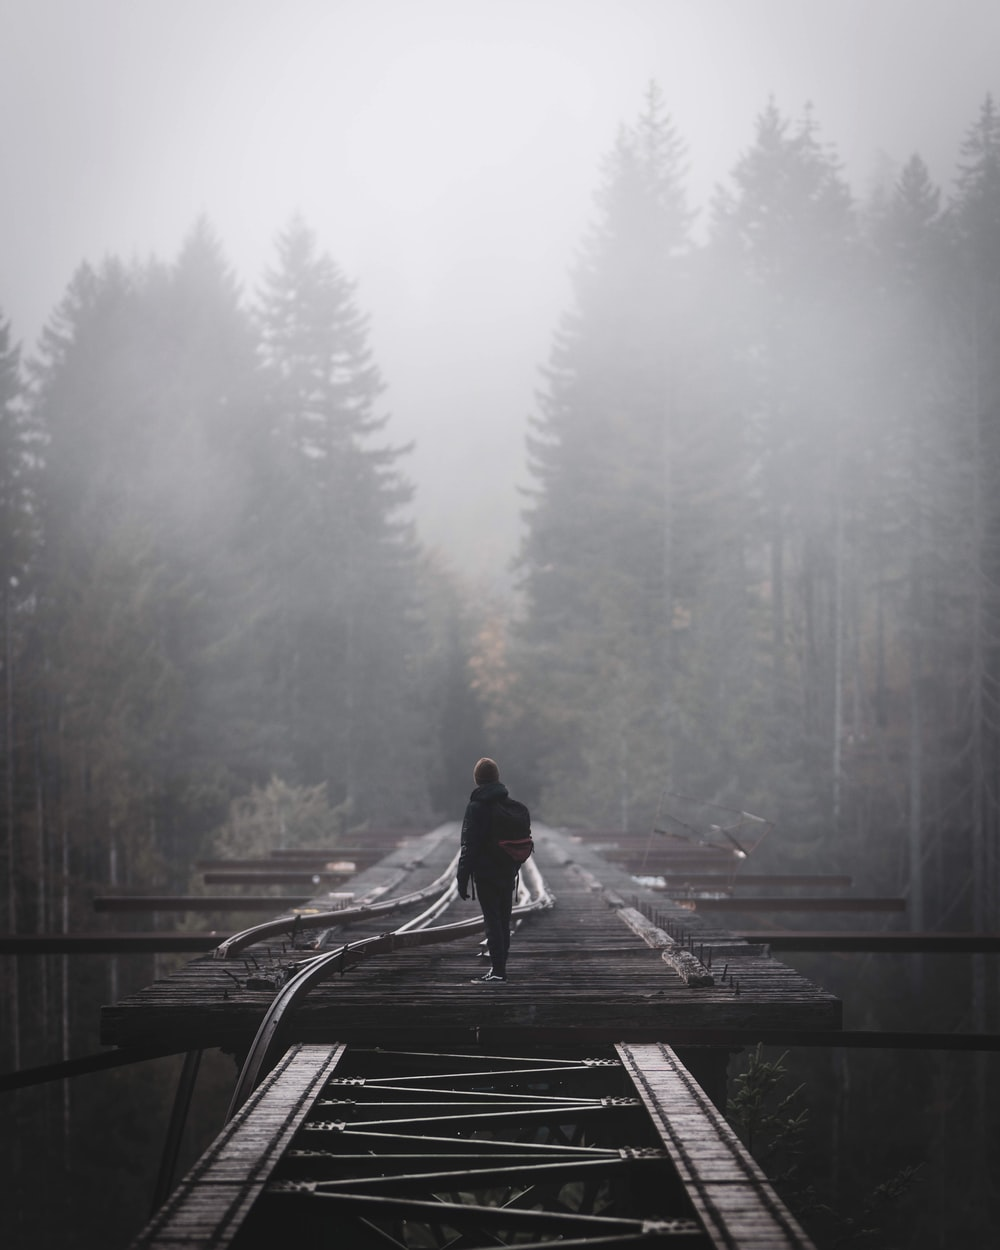 person walking on wooden bridge during foggy weather